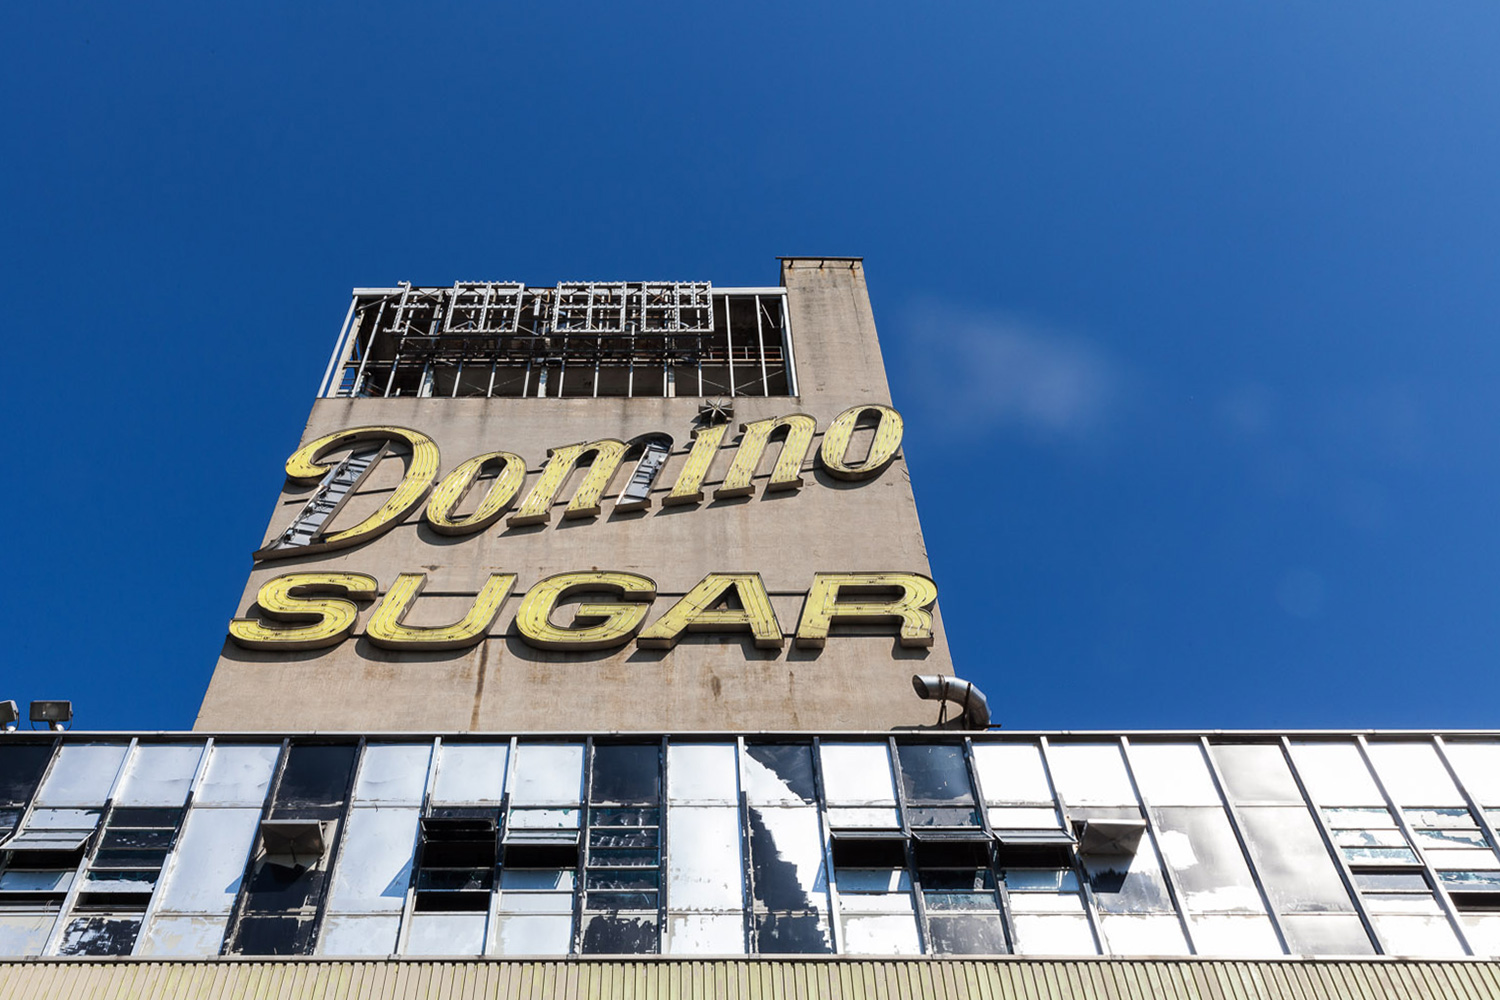 Domino Sugar Sign, Domino Sugar Factory